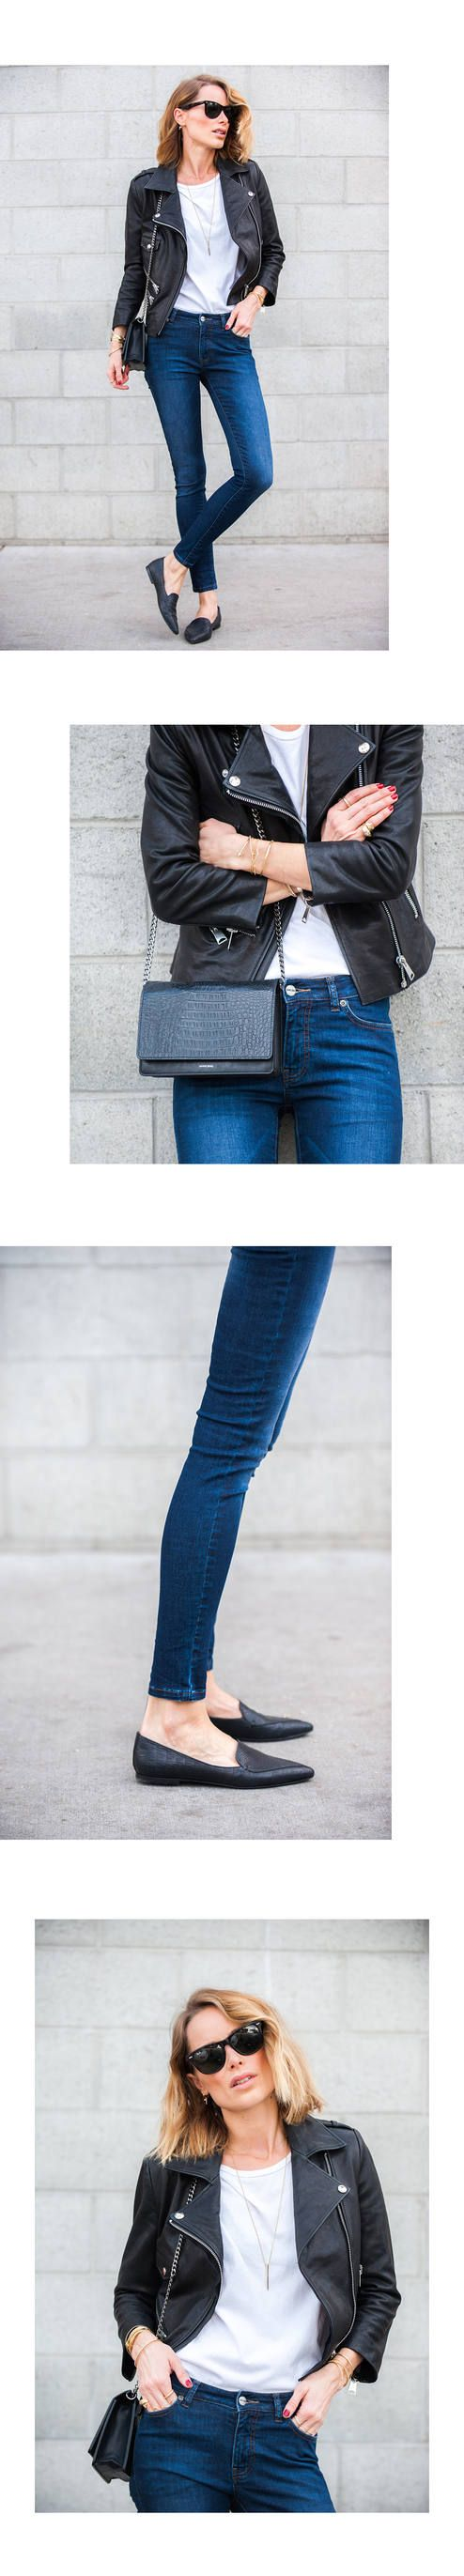 Casual High Waisted Outfit  # #Anine's World #Winter Trends #Fashionistas #Best Of Winter Apparel #Outfit High Waisted #High Waisted Outfits #High Waisted Outfit Casual #High Waisted Outfit How To Wear #High Waisted Outfit 2015 #High Waisted Outfit Where To Get #High Waisted Outfit How To Style